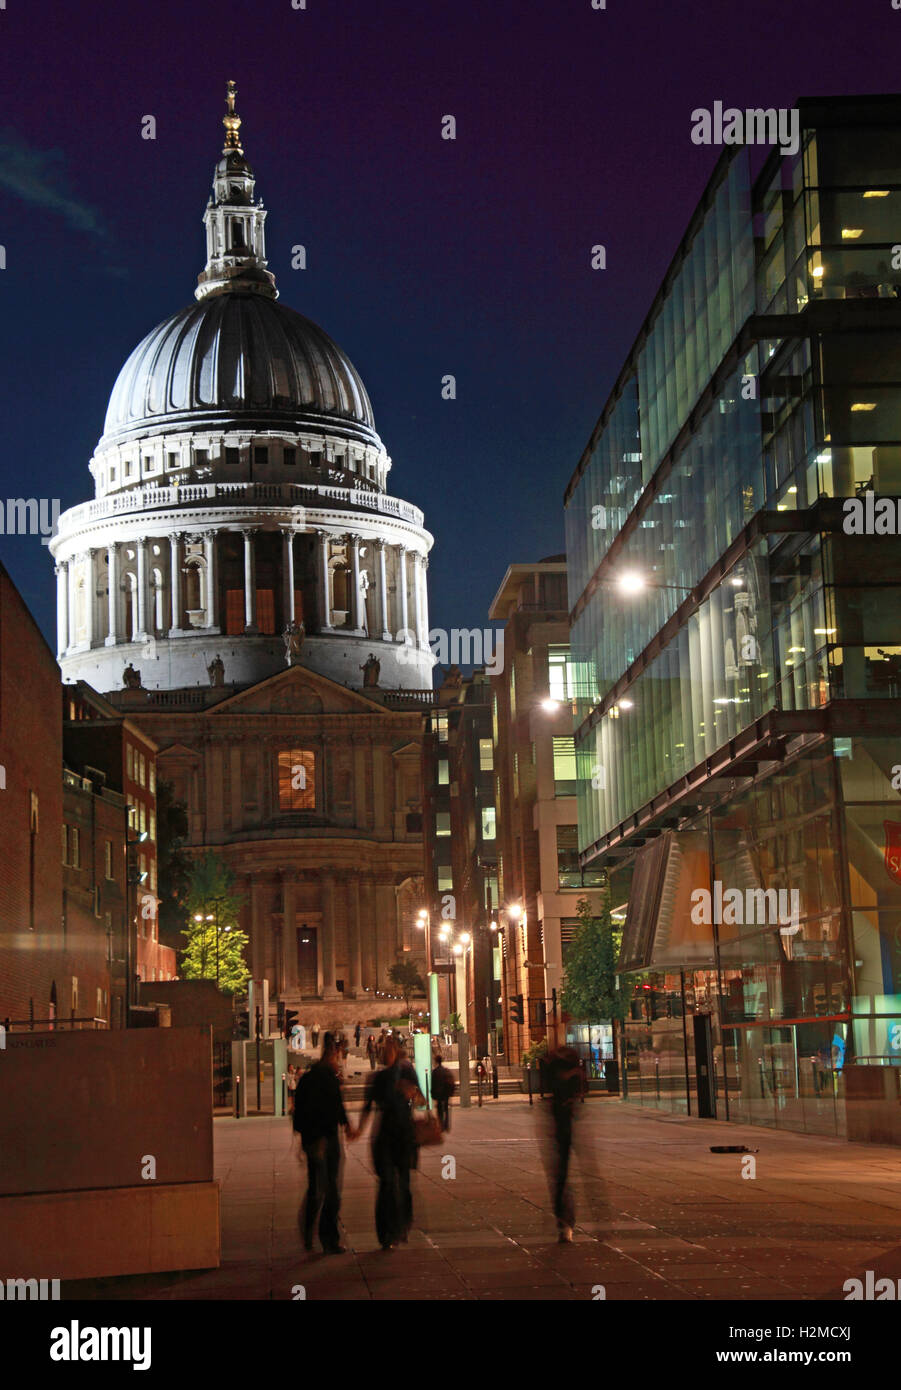 St Pauls Cathedral London late in the evening, with night people - Stock Image